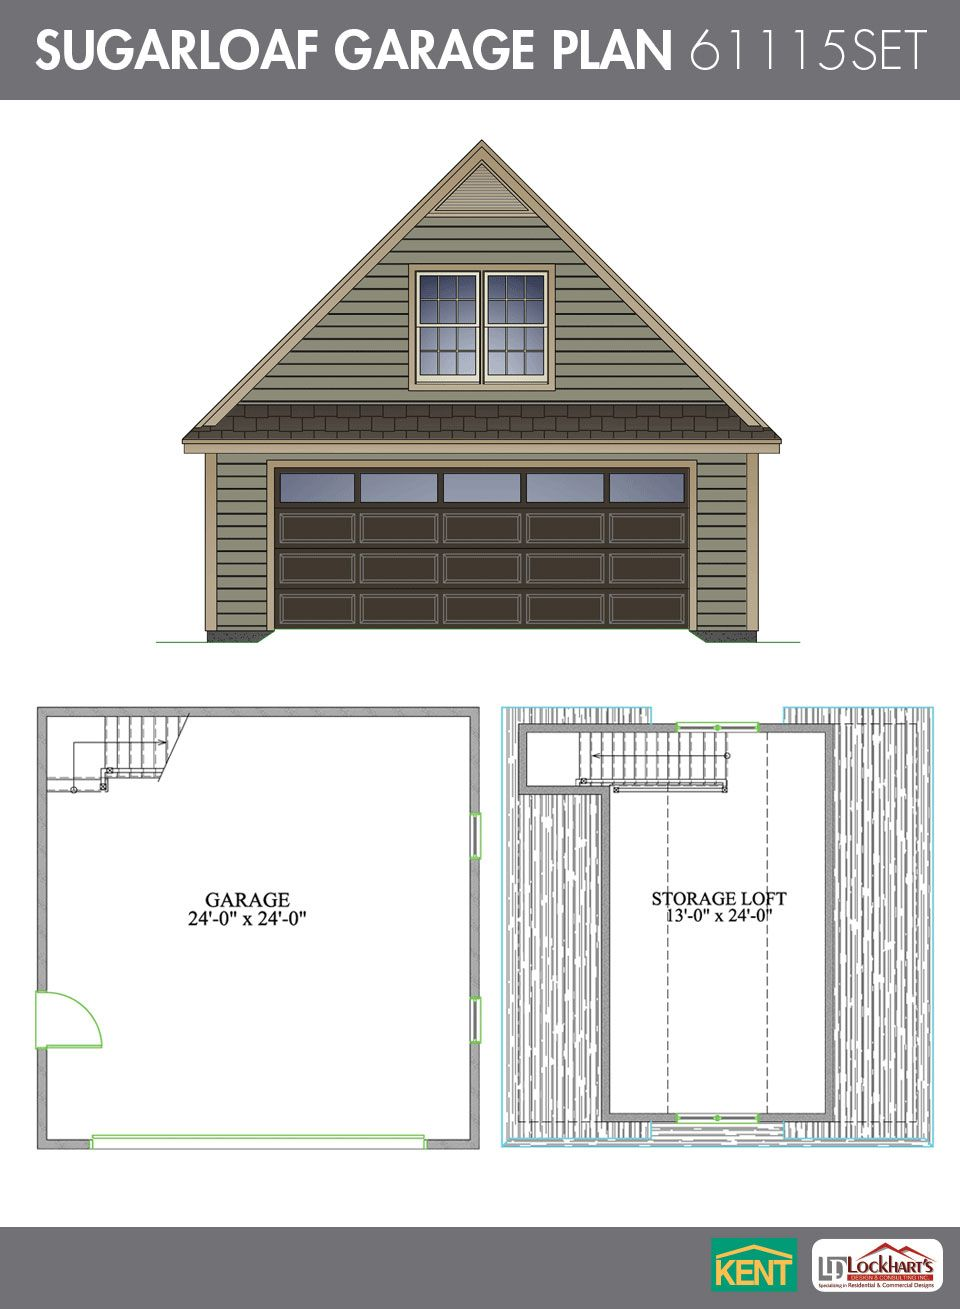 Sugarloaf garage plan 26 39 x 28 39 2 car garage 378 sq ft for Room over garage plans